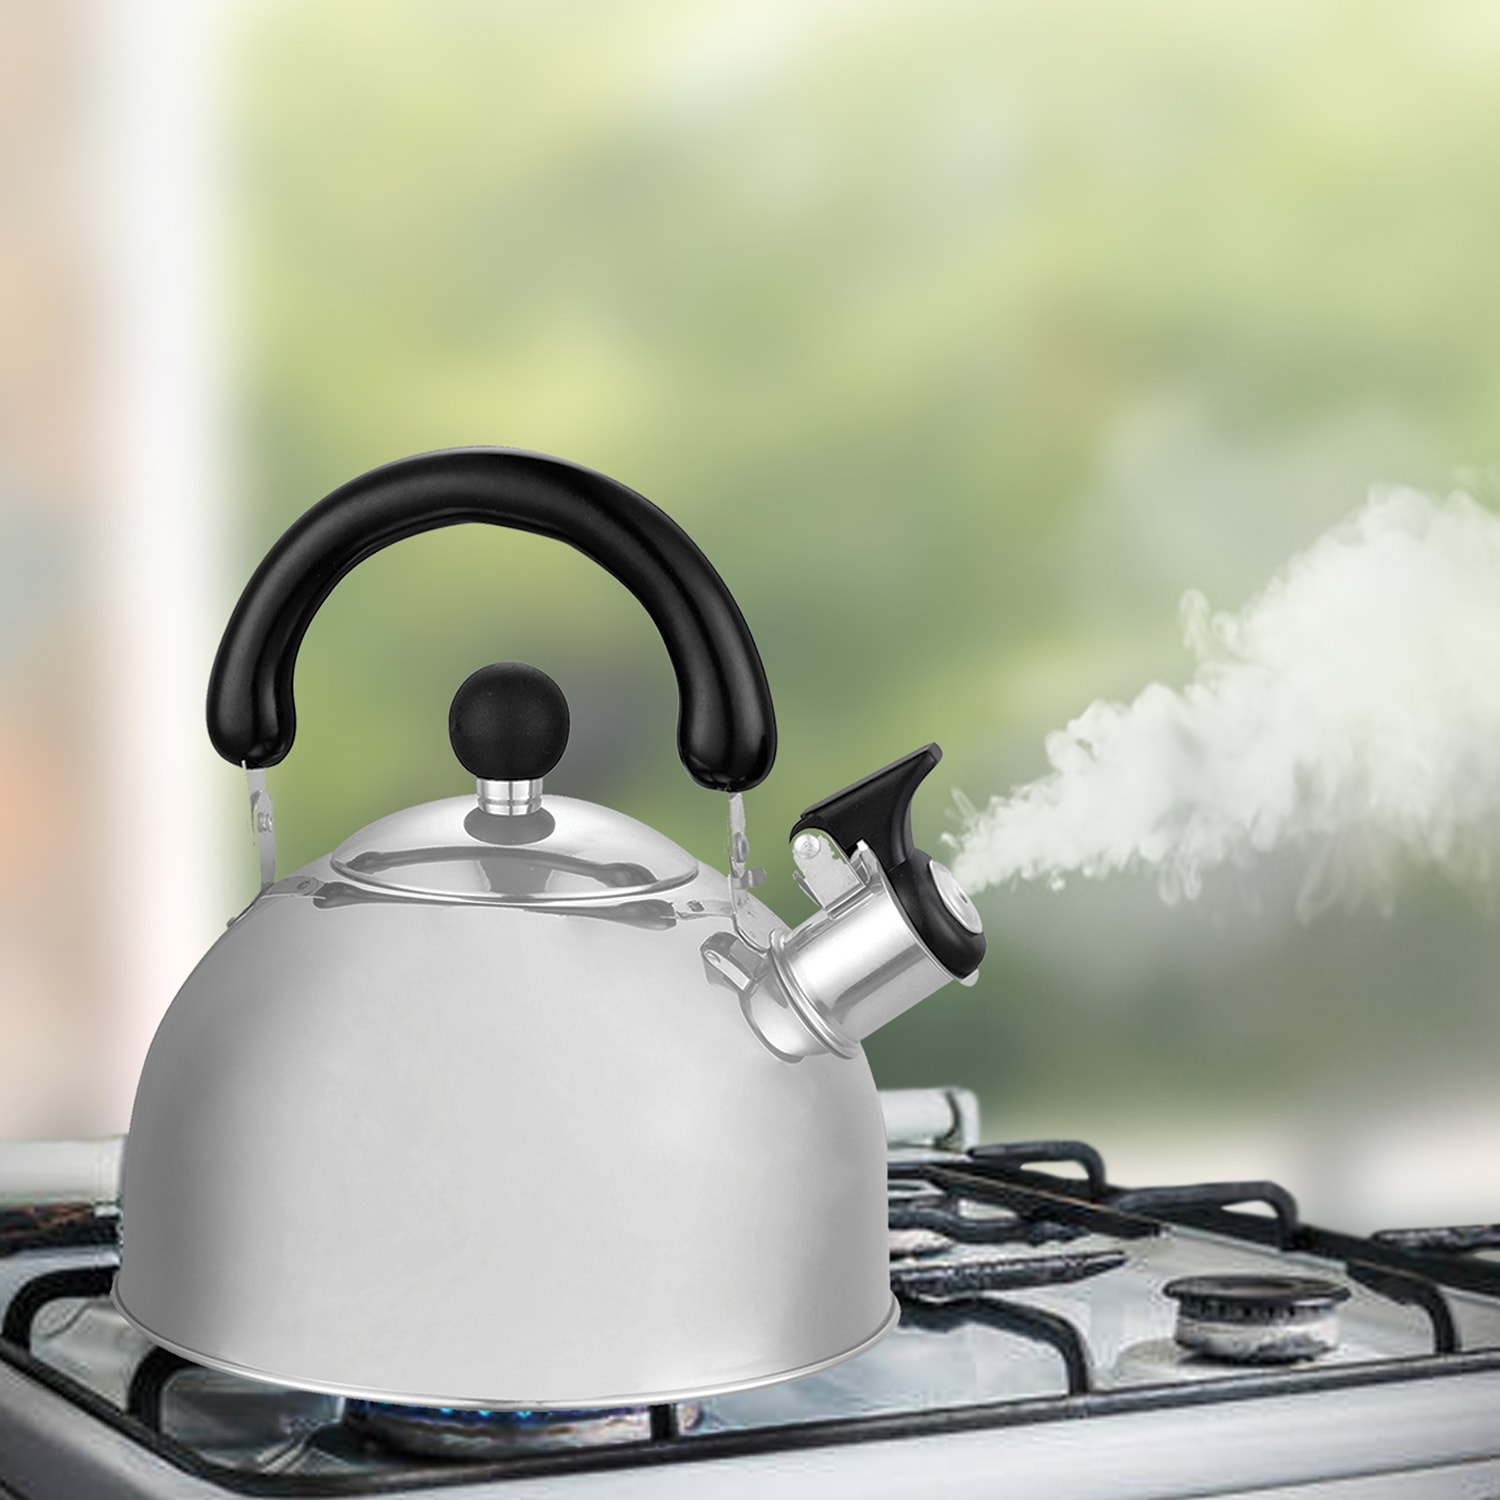 Masflex Stainless Steel Whistling Kettle